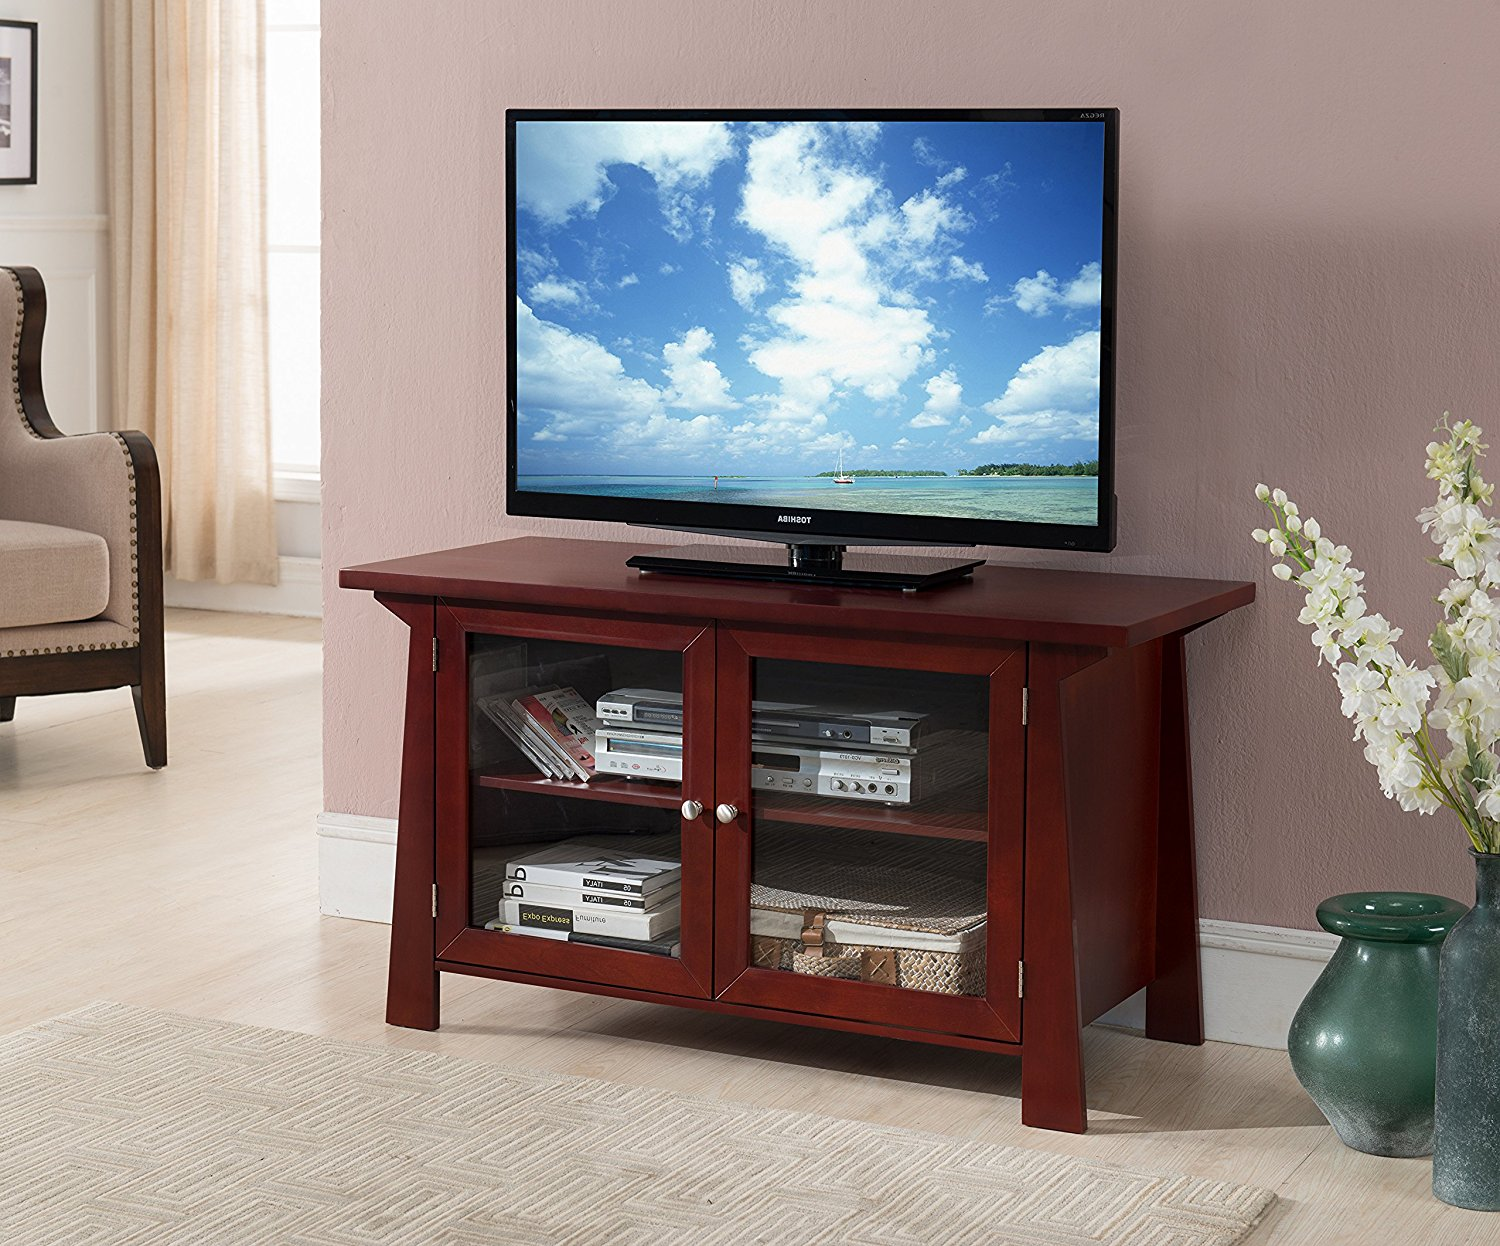 "Pilaster Designs 42"" Cherry Wood Entertainment Center TV Console Stand With Glass Cabinet Doors & Storage Shelves"